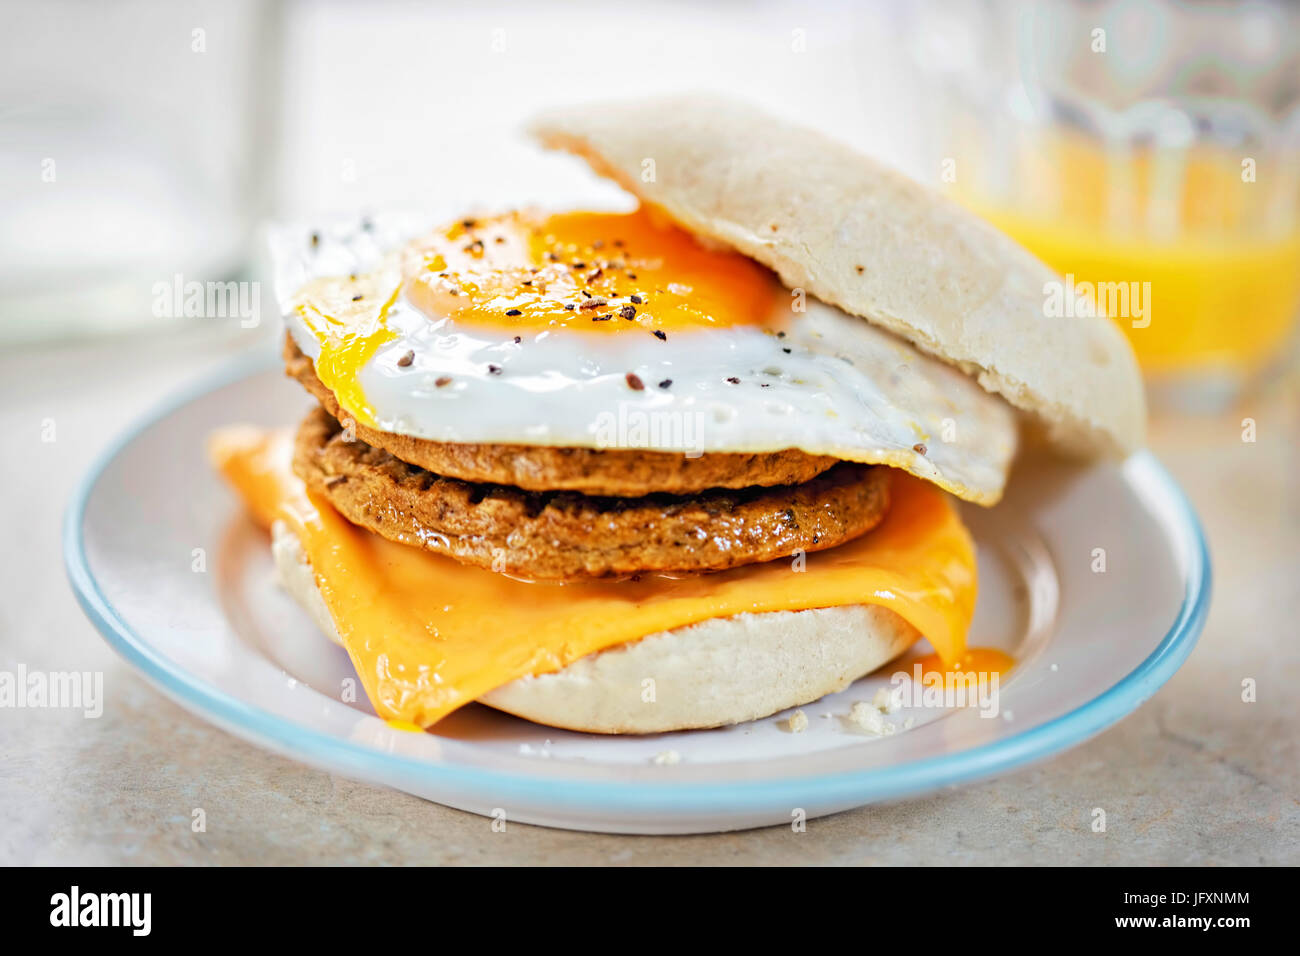 Meat free sausage flavour patties with cheese and egg on breakfast muffin - Stock Image